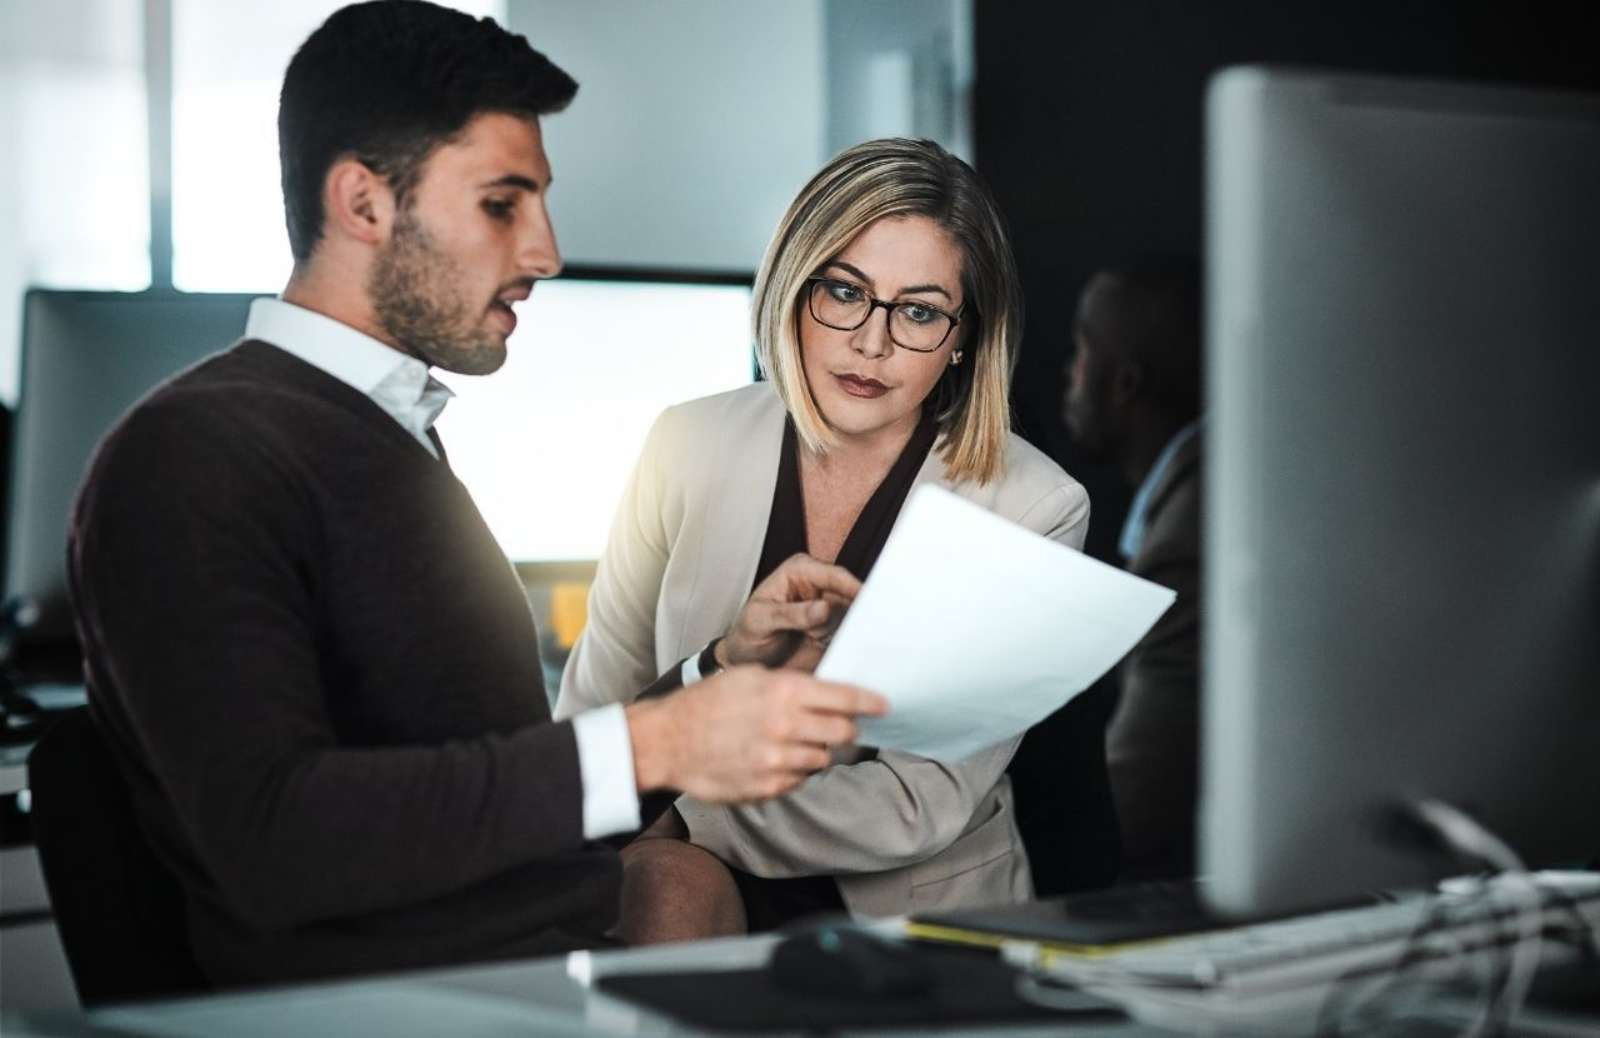 Business man showing a document to business woman